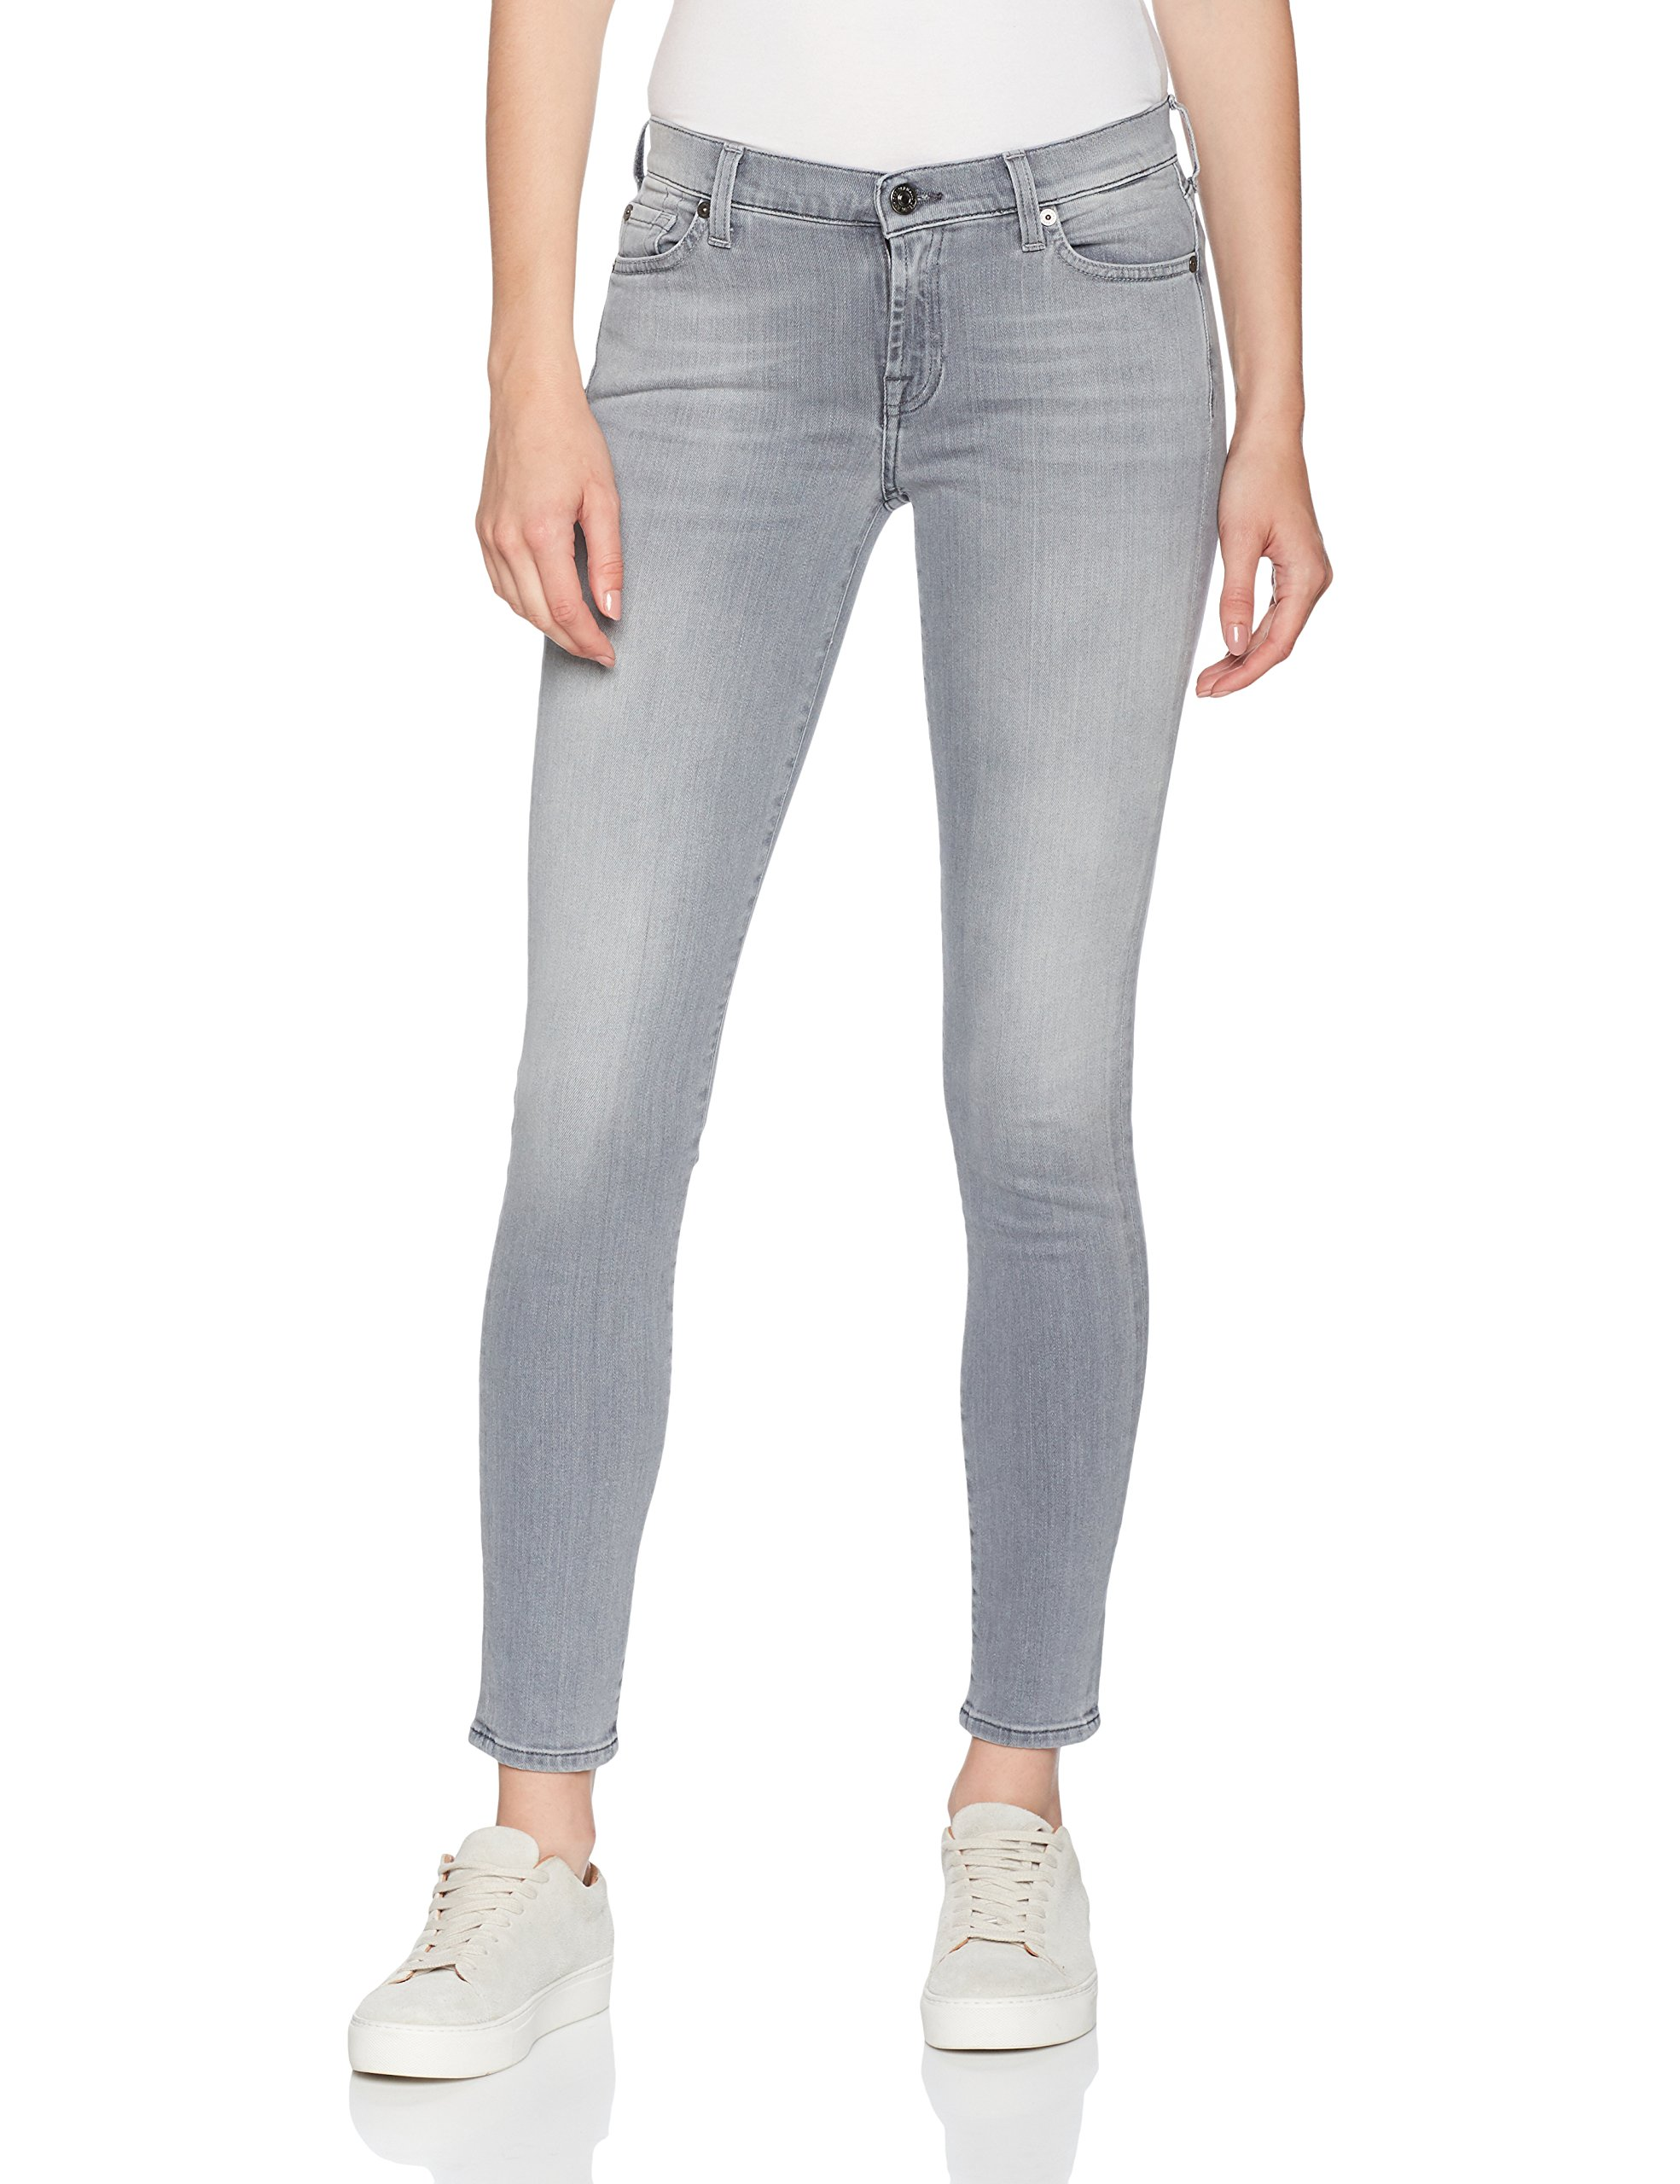 The All Mankind 7 30Femme Fabricant28 Jean l30taille For SkinnyGrisgrey LgW28 pUVSzM